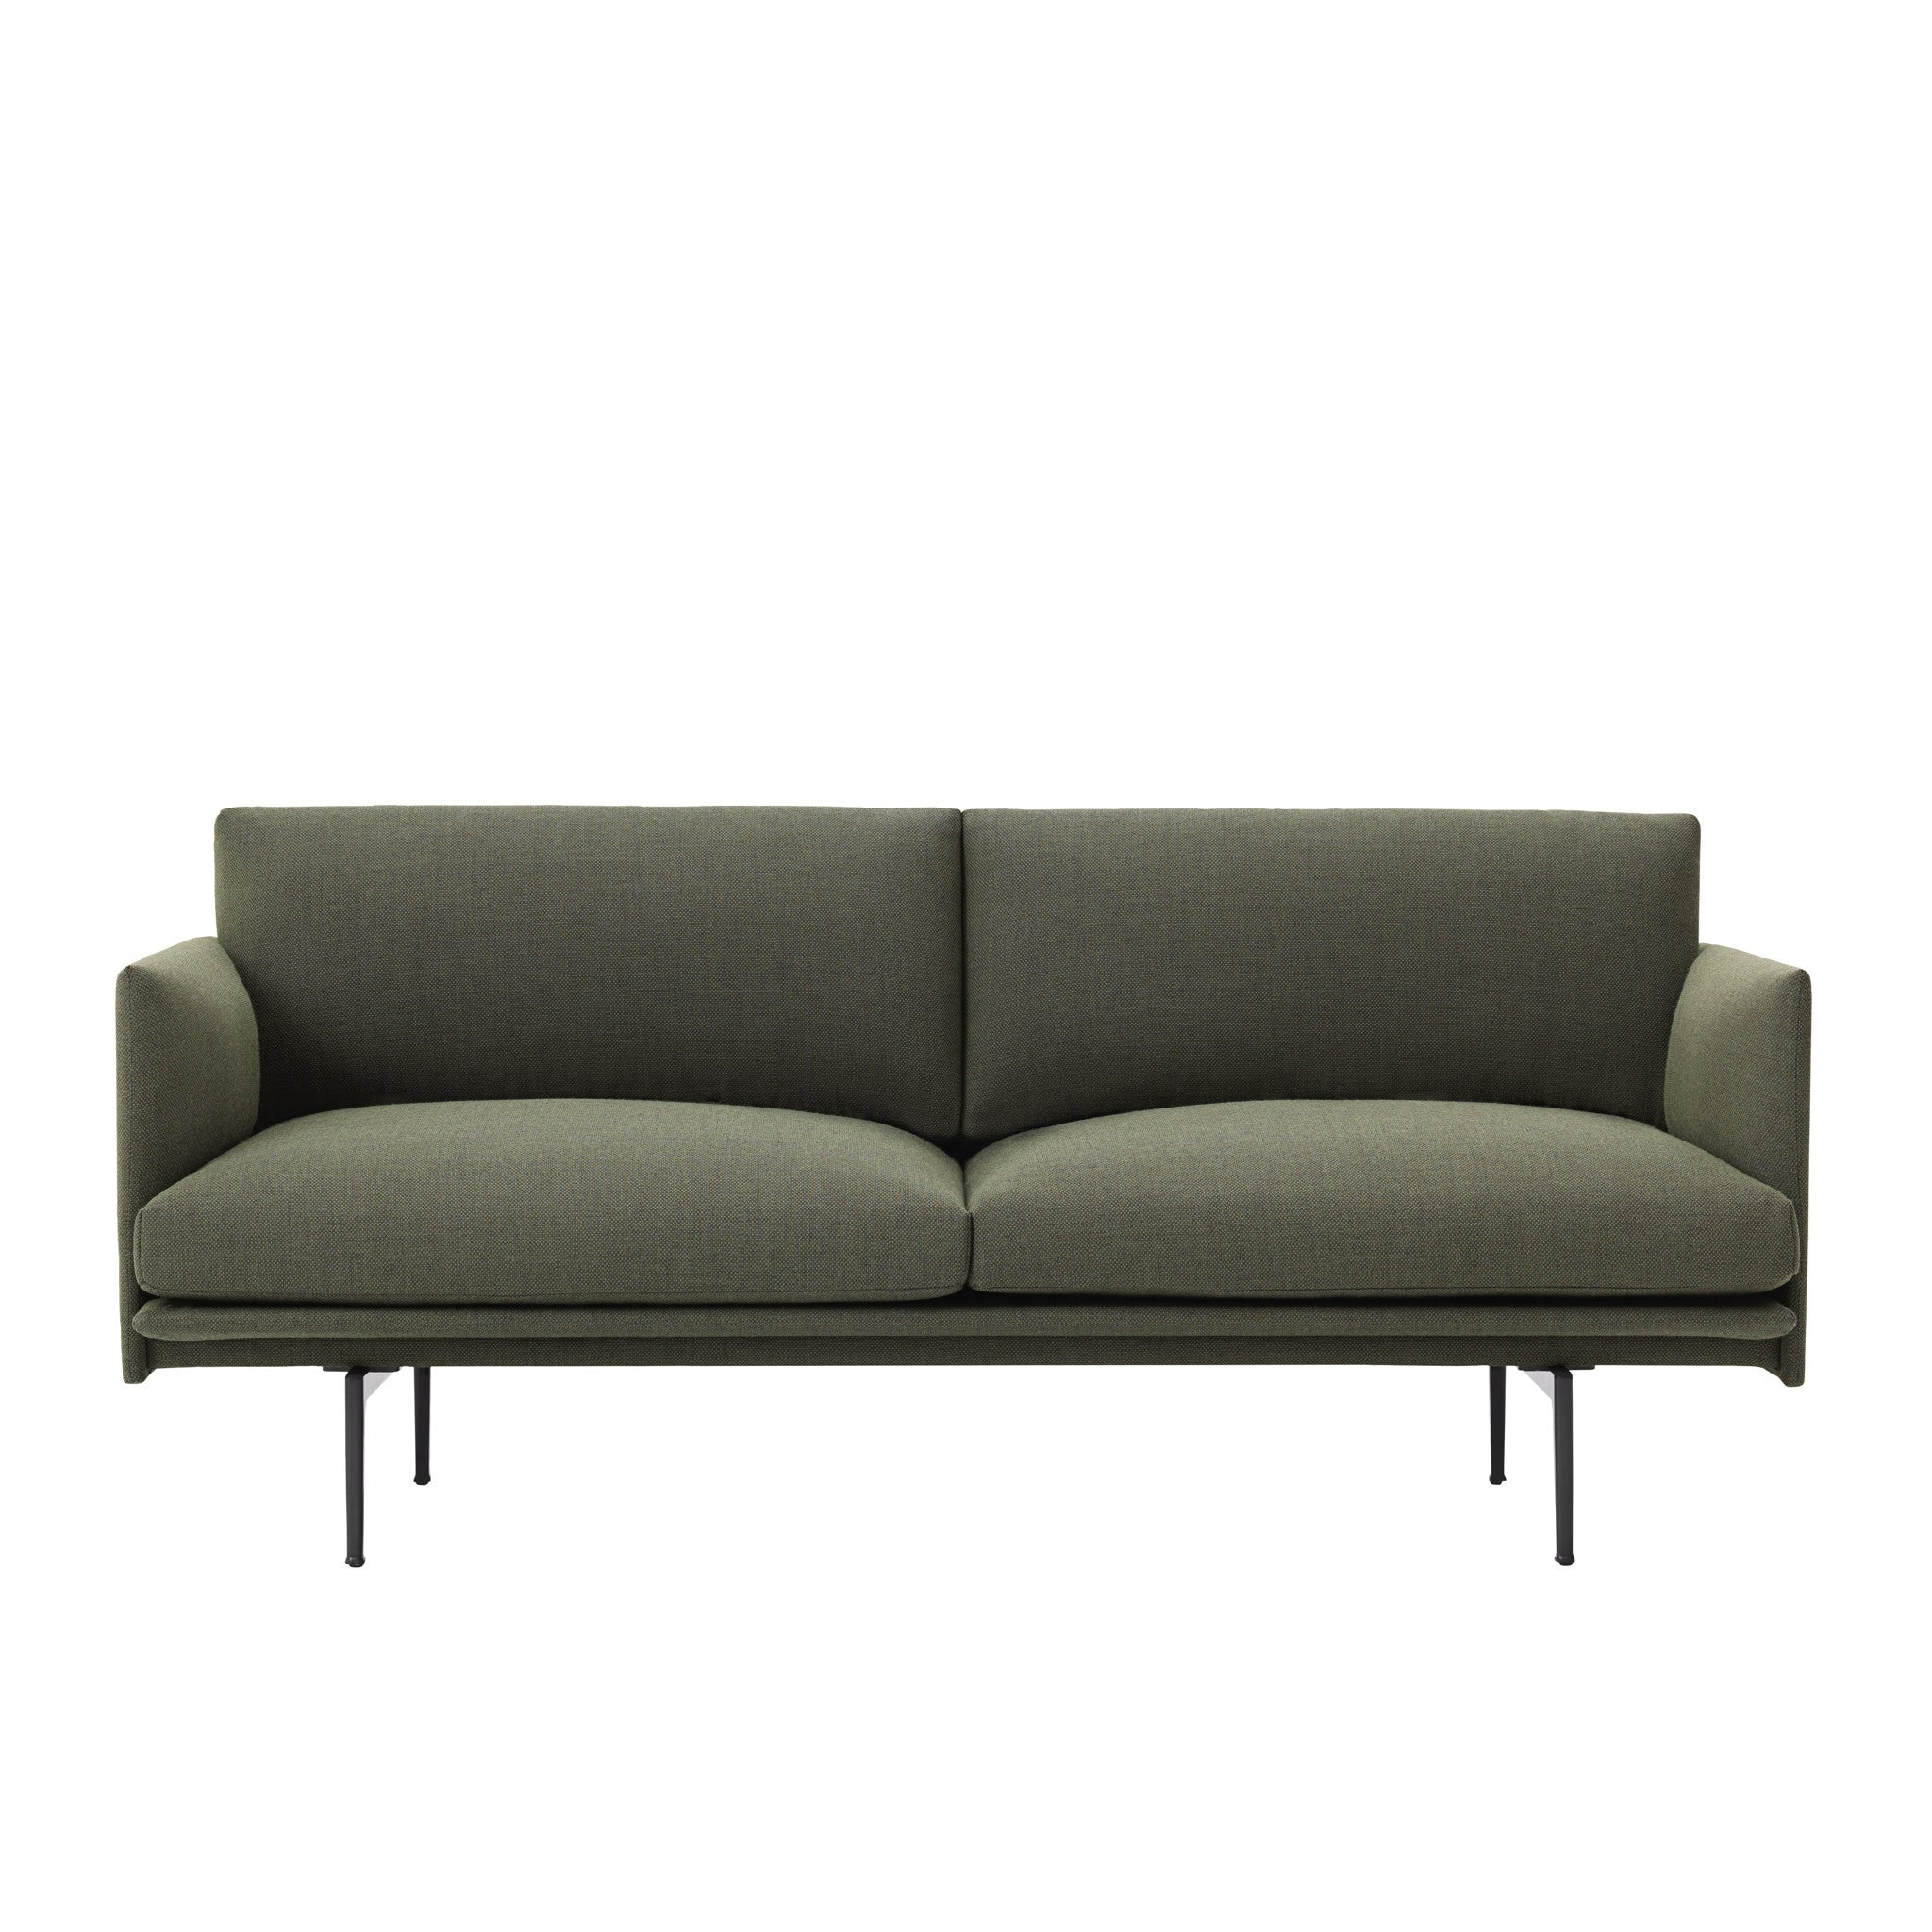 muuto sofa bed cushion repair houston outline by  haus